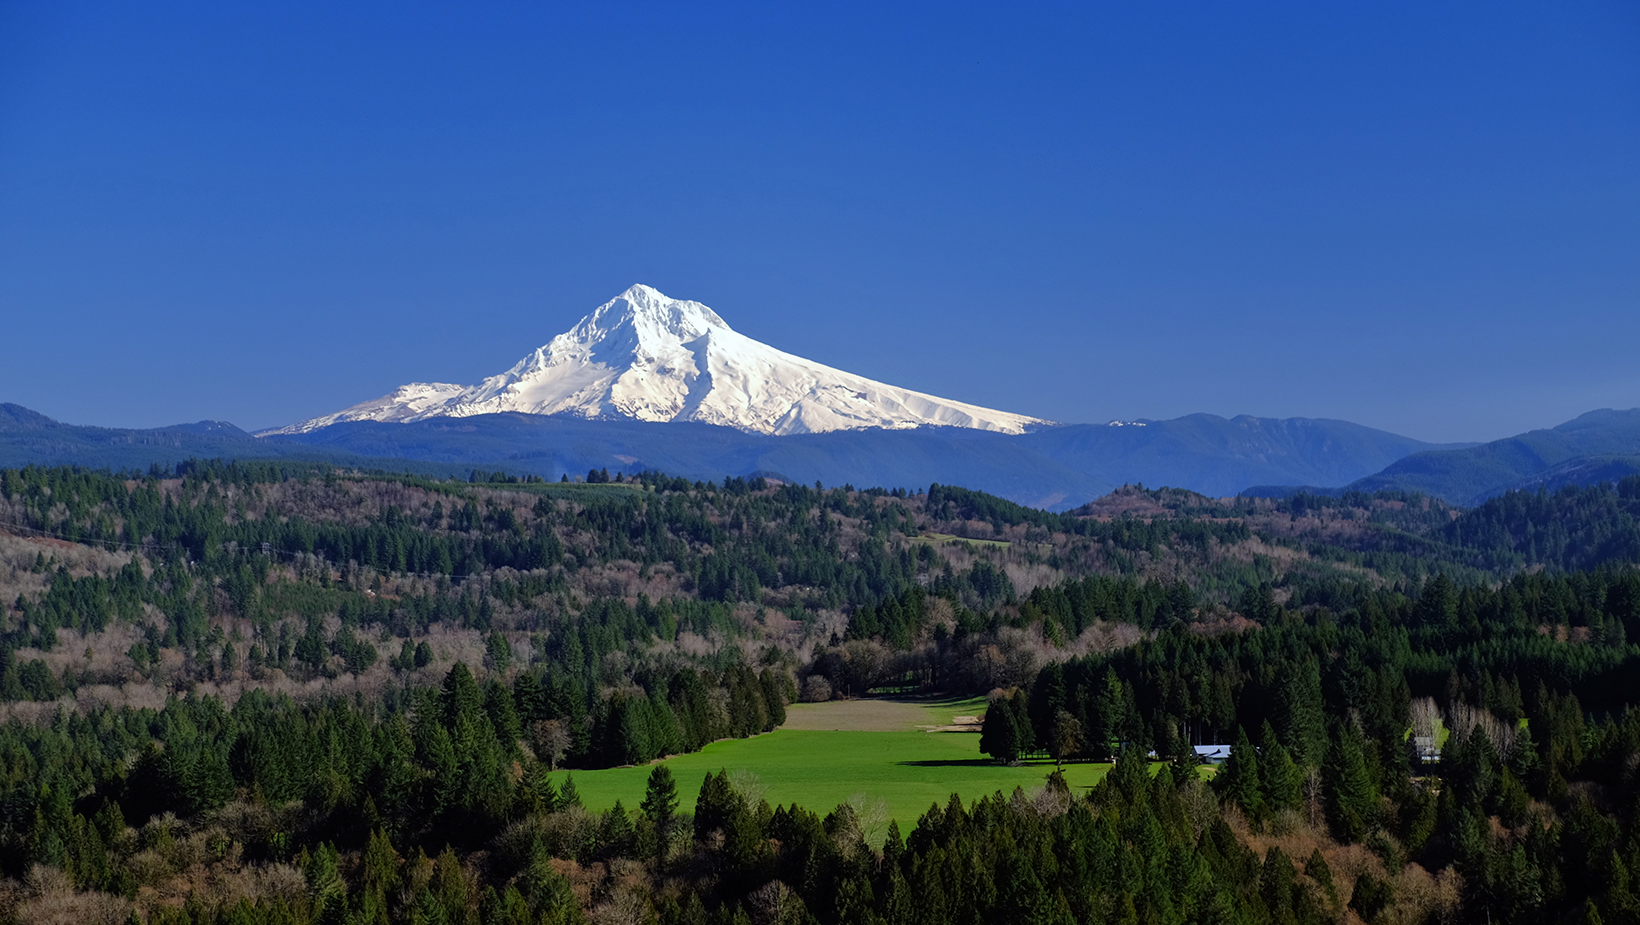 A pristine view of Mt. Hood on a sunny day surrounded by lush greenery and forested landscapes